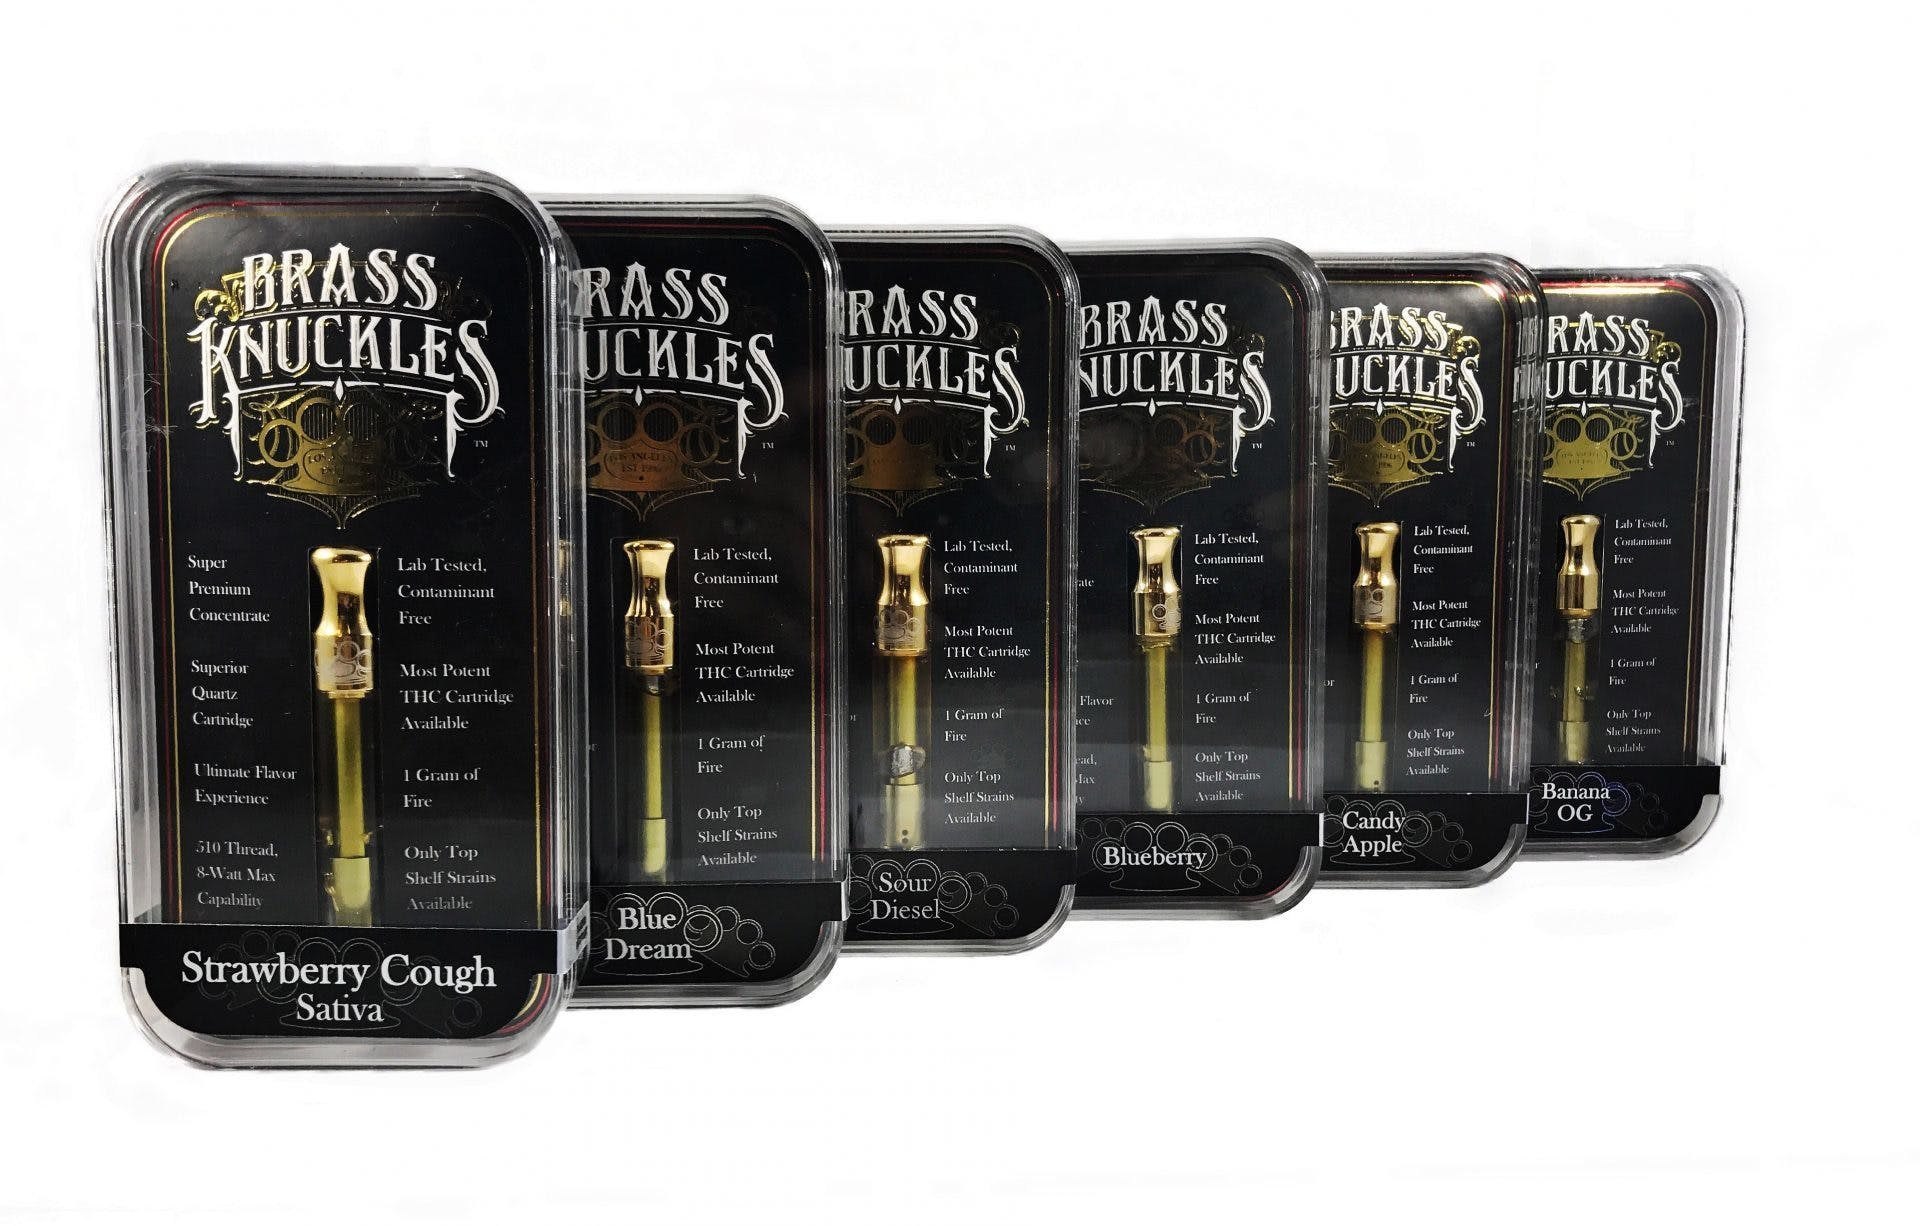 concentrate-brass-knuckles-abracadabra-3-for-90-21-mix-n-match-21